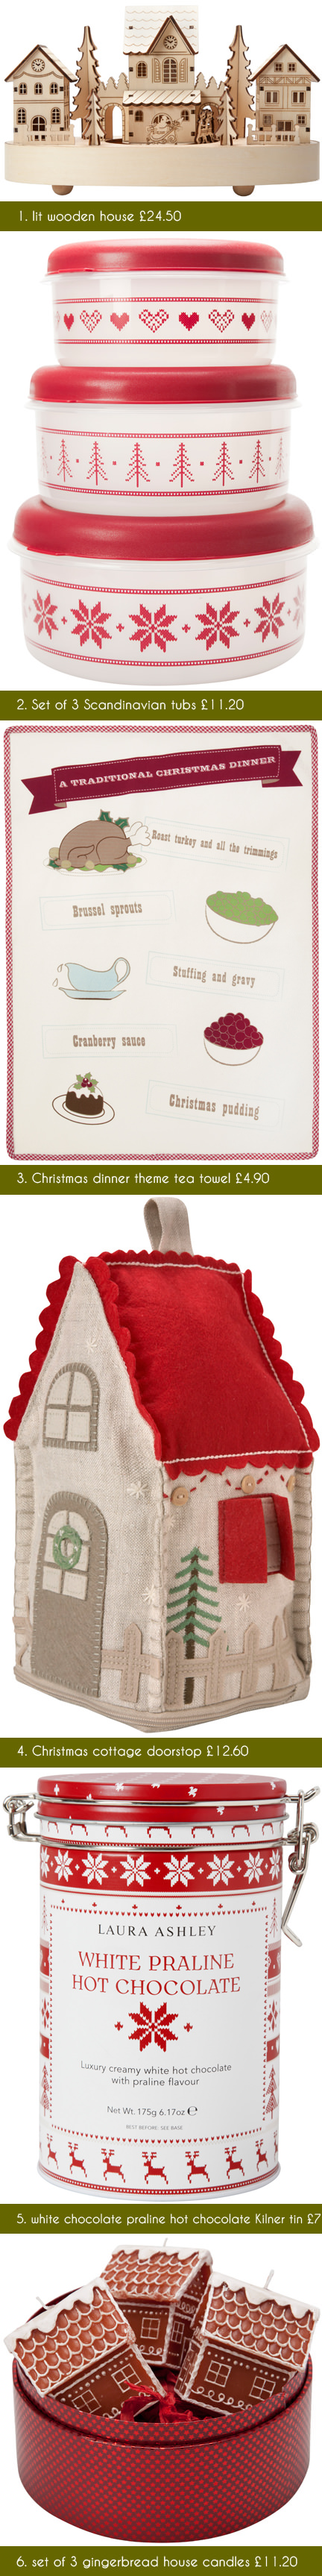 selection of festive Christmas items available from Laura Ashley